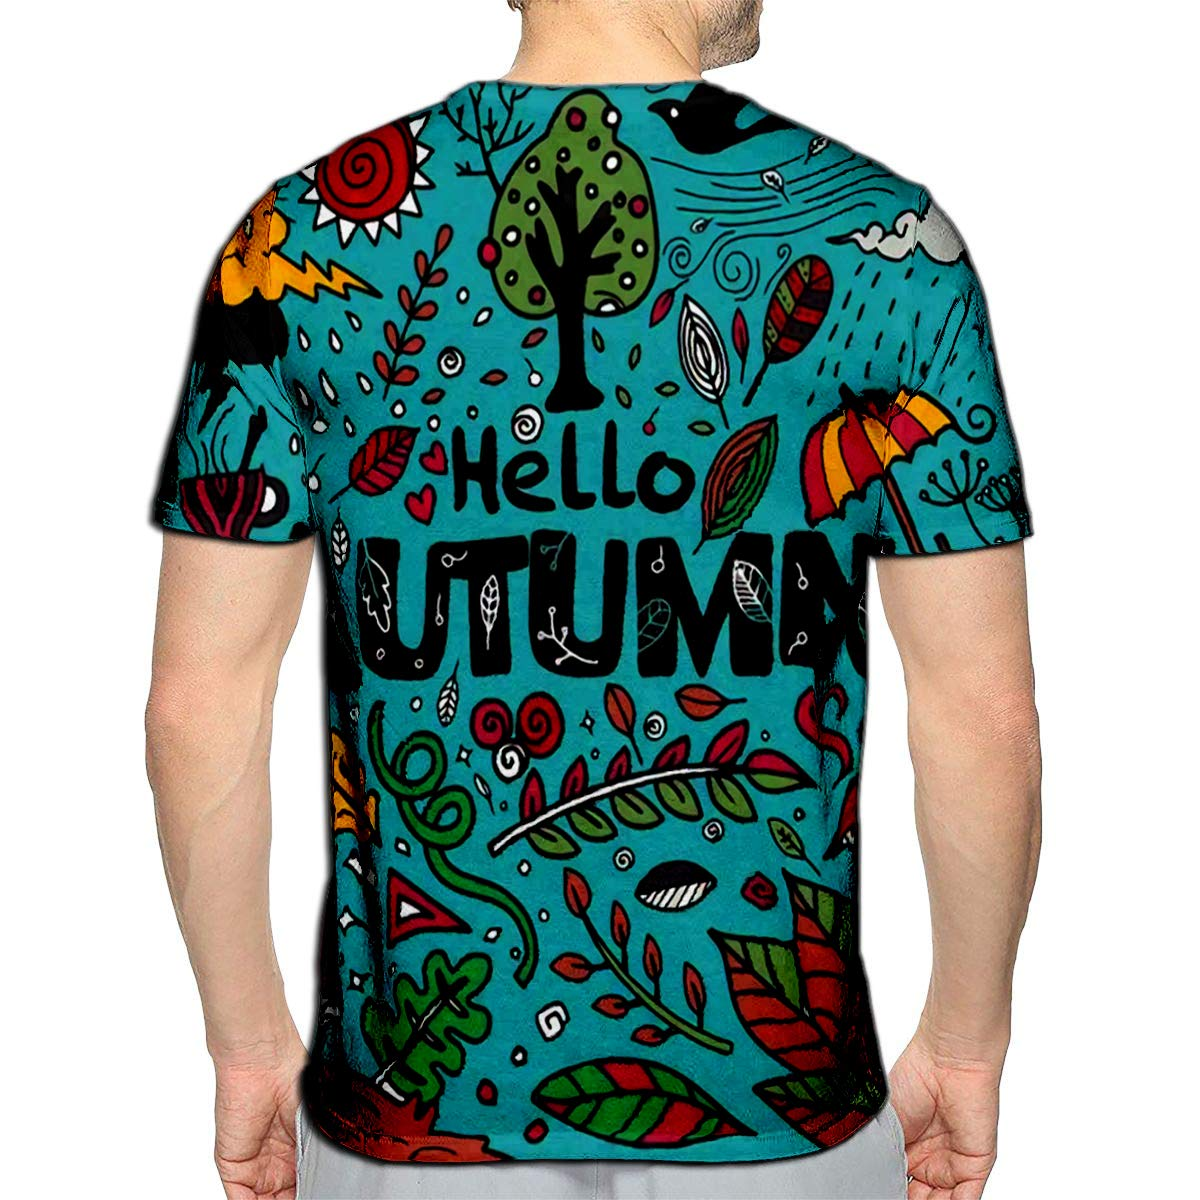 3D Printed T-Shirts Sketchy Doodle Cartoon Objects and Symbols On The Autumn The